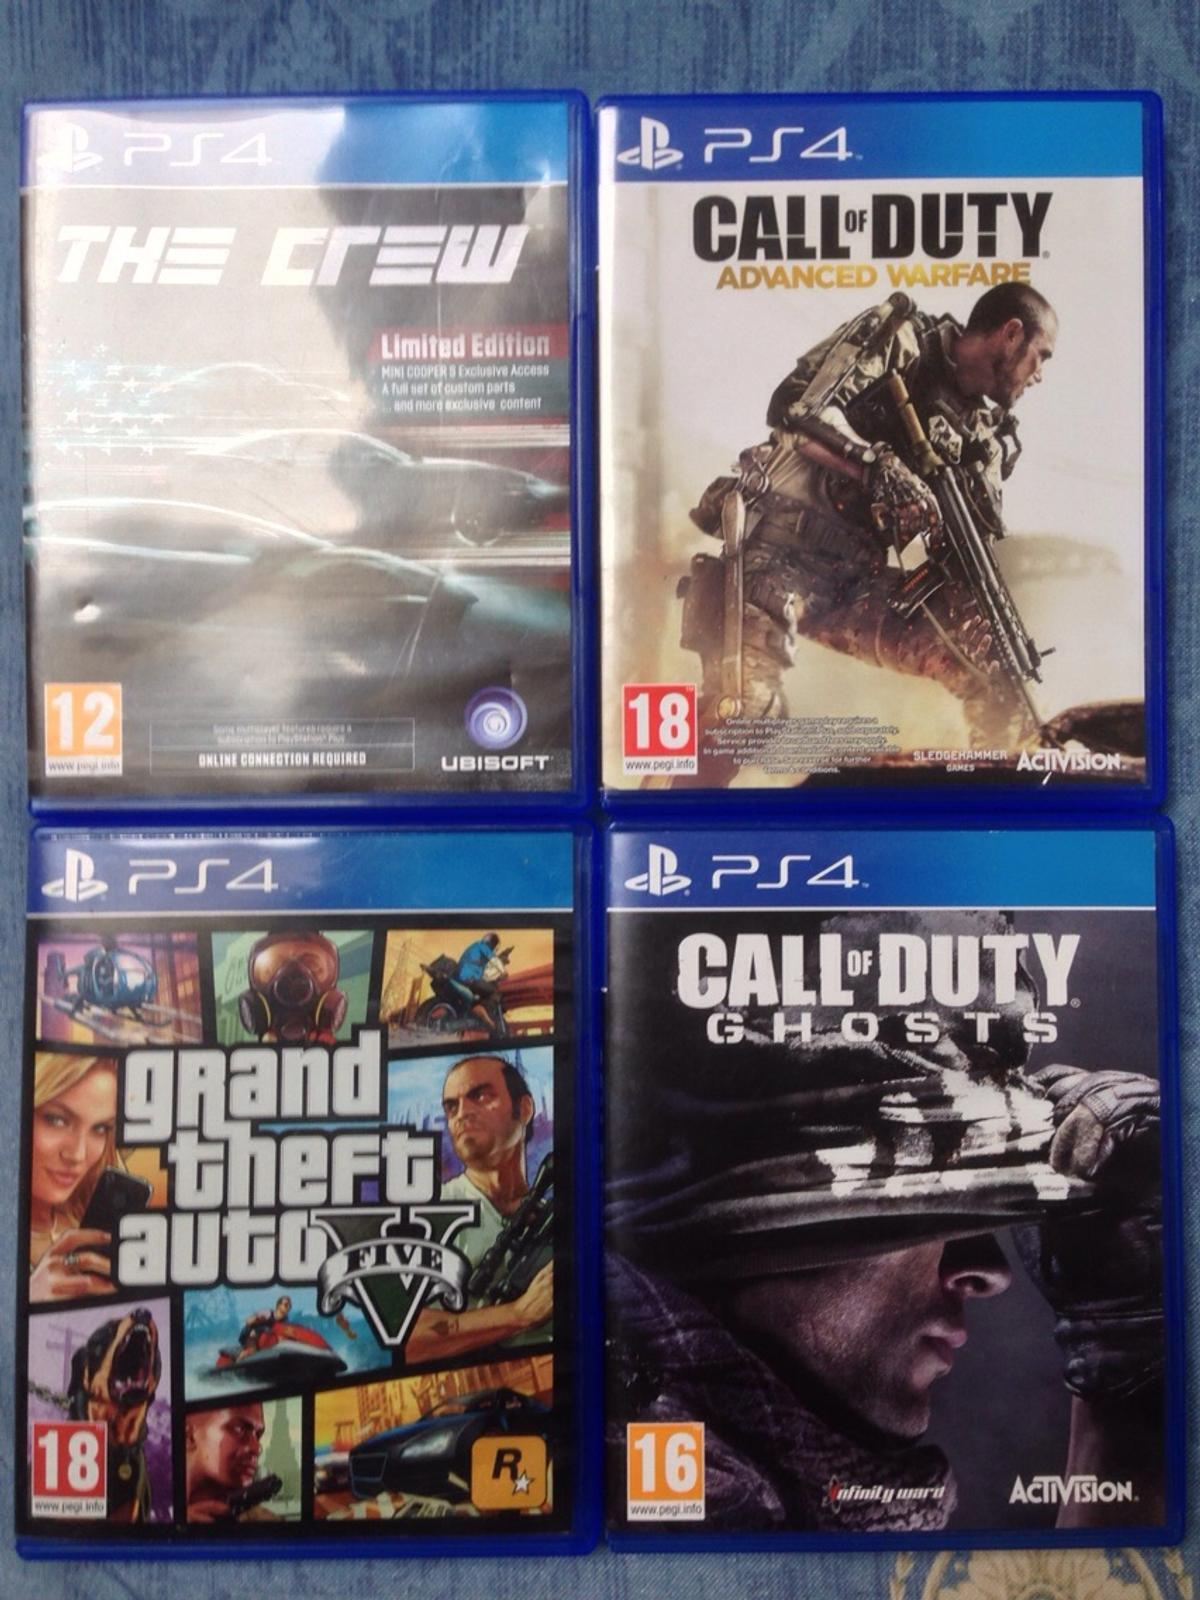 Ps4 Games Gta 5 Call Of Duty Ghosts Aw In Bd8 Bradford For 40 00 For Sale Shpock